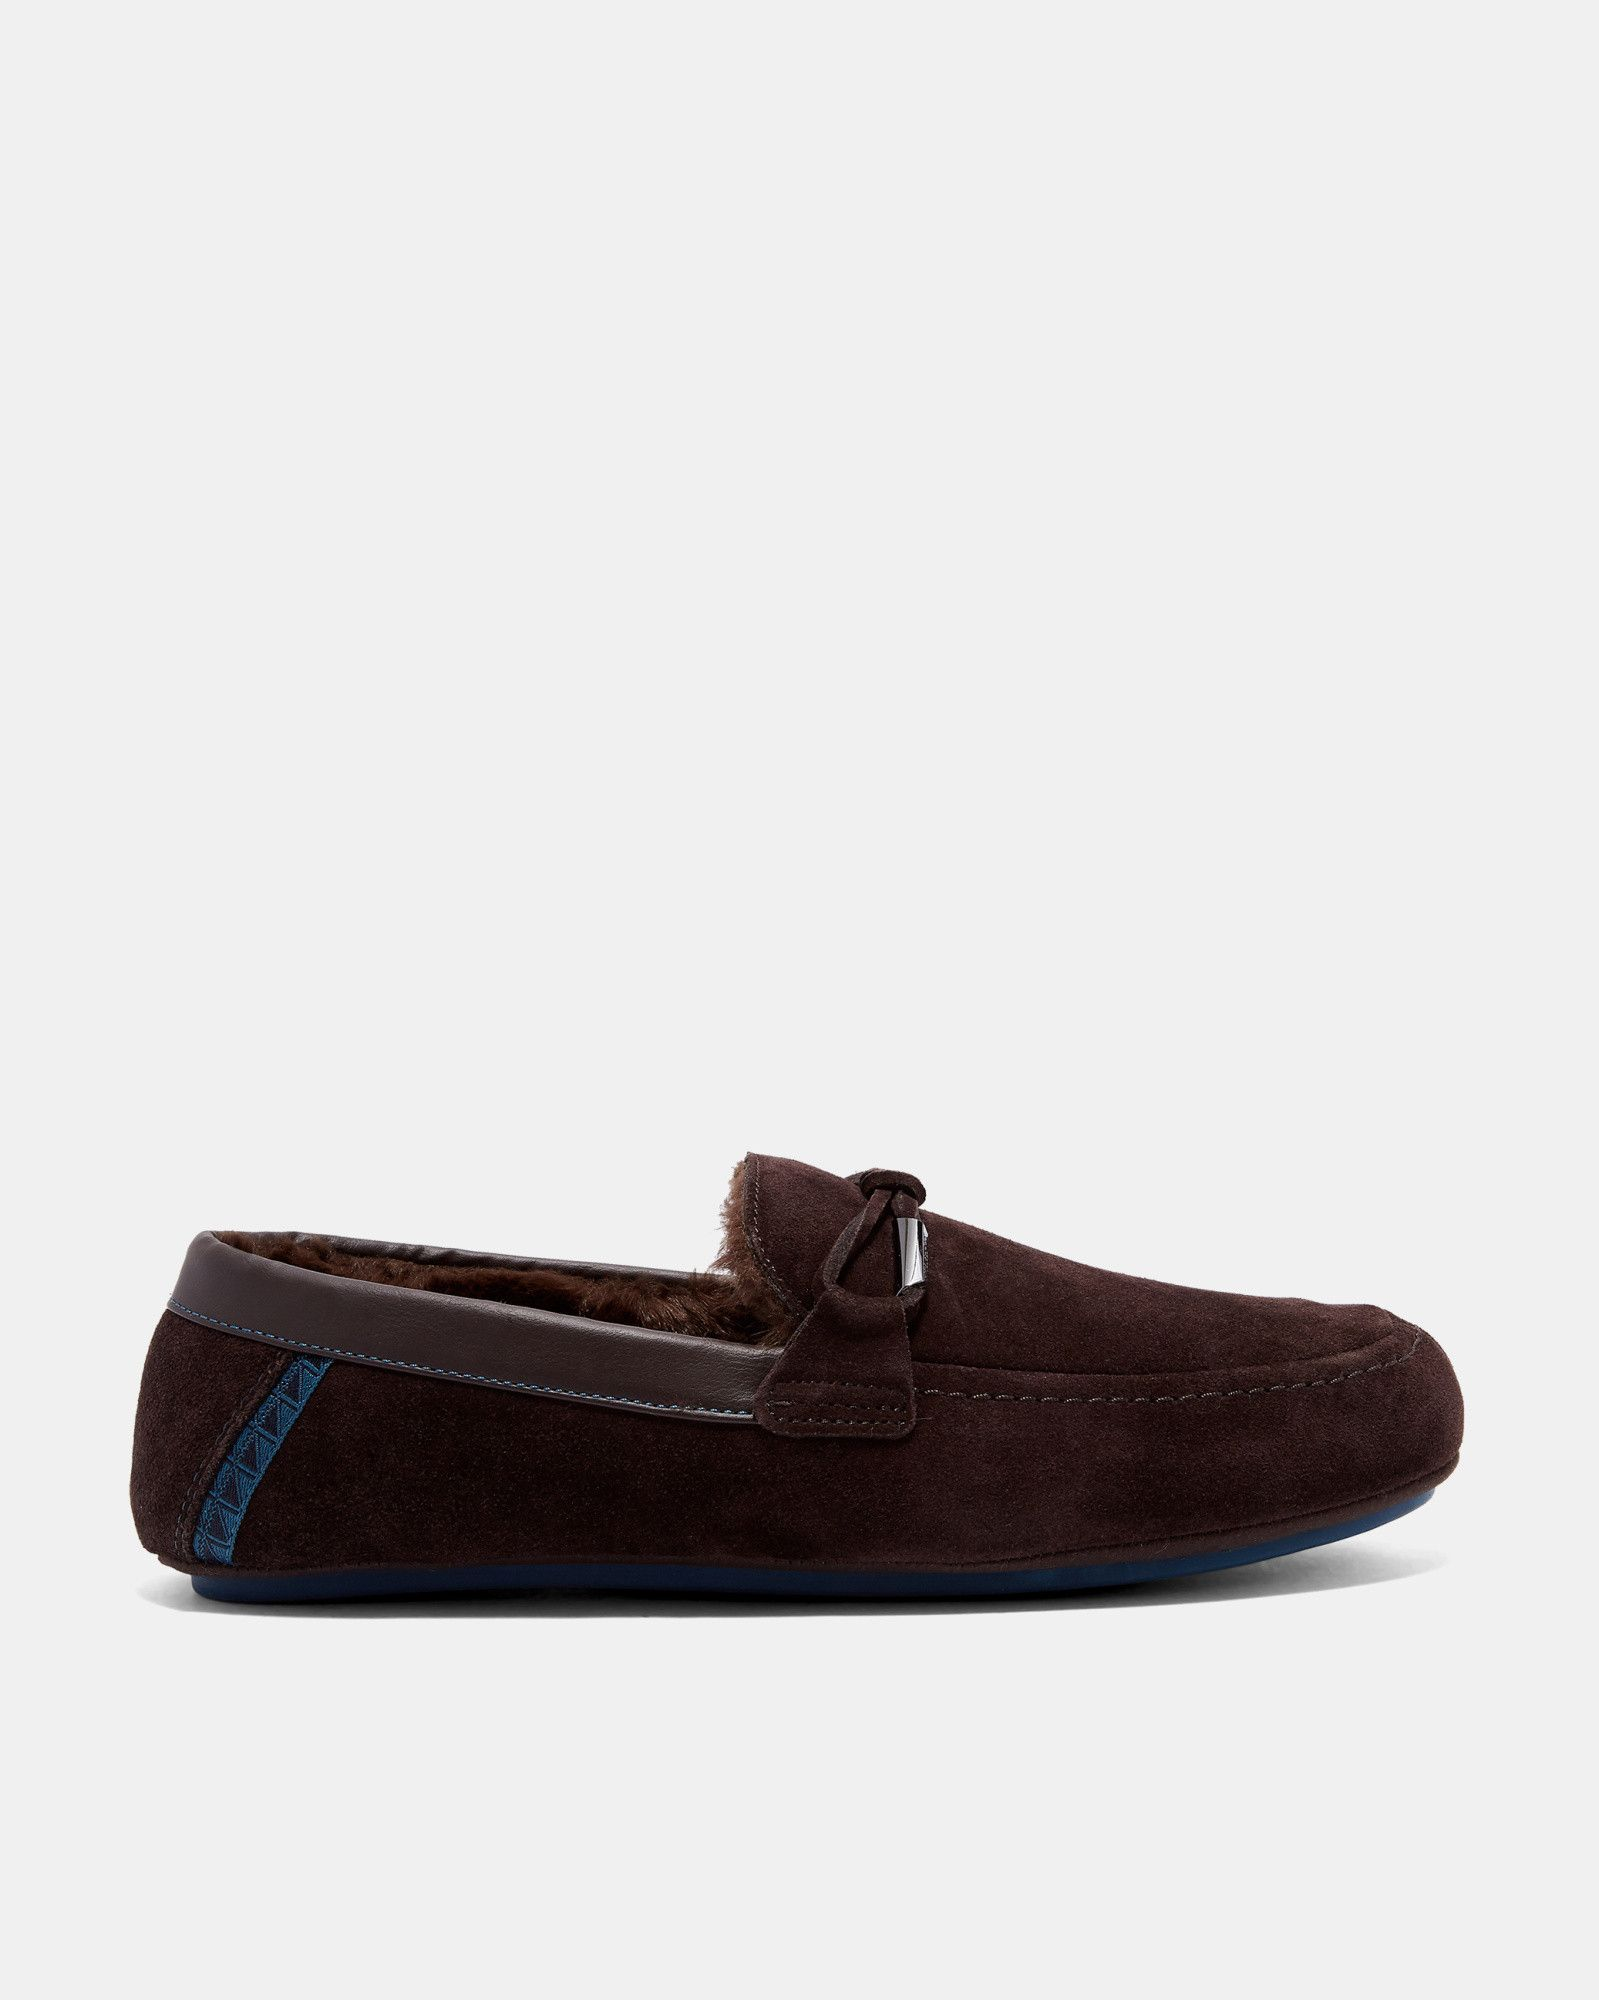 08bb40f72adad6 Suede Moccasin Slippers